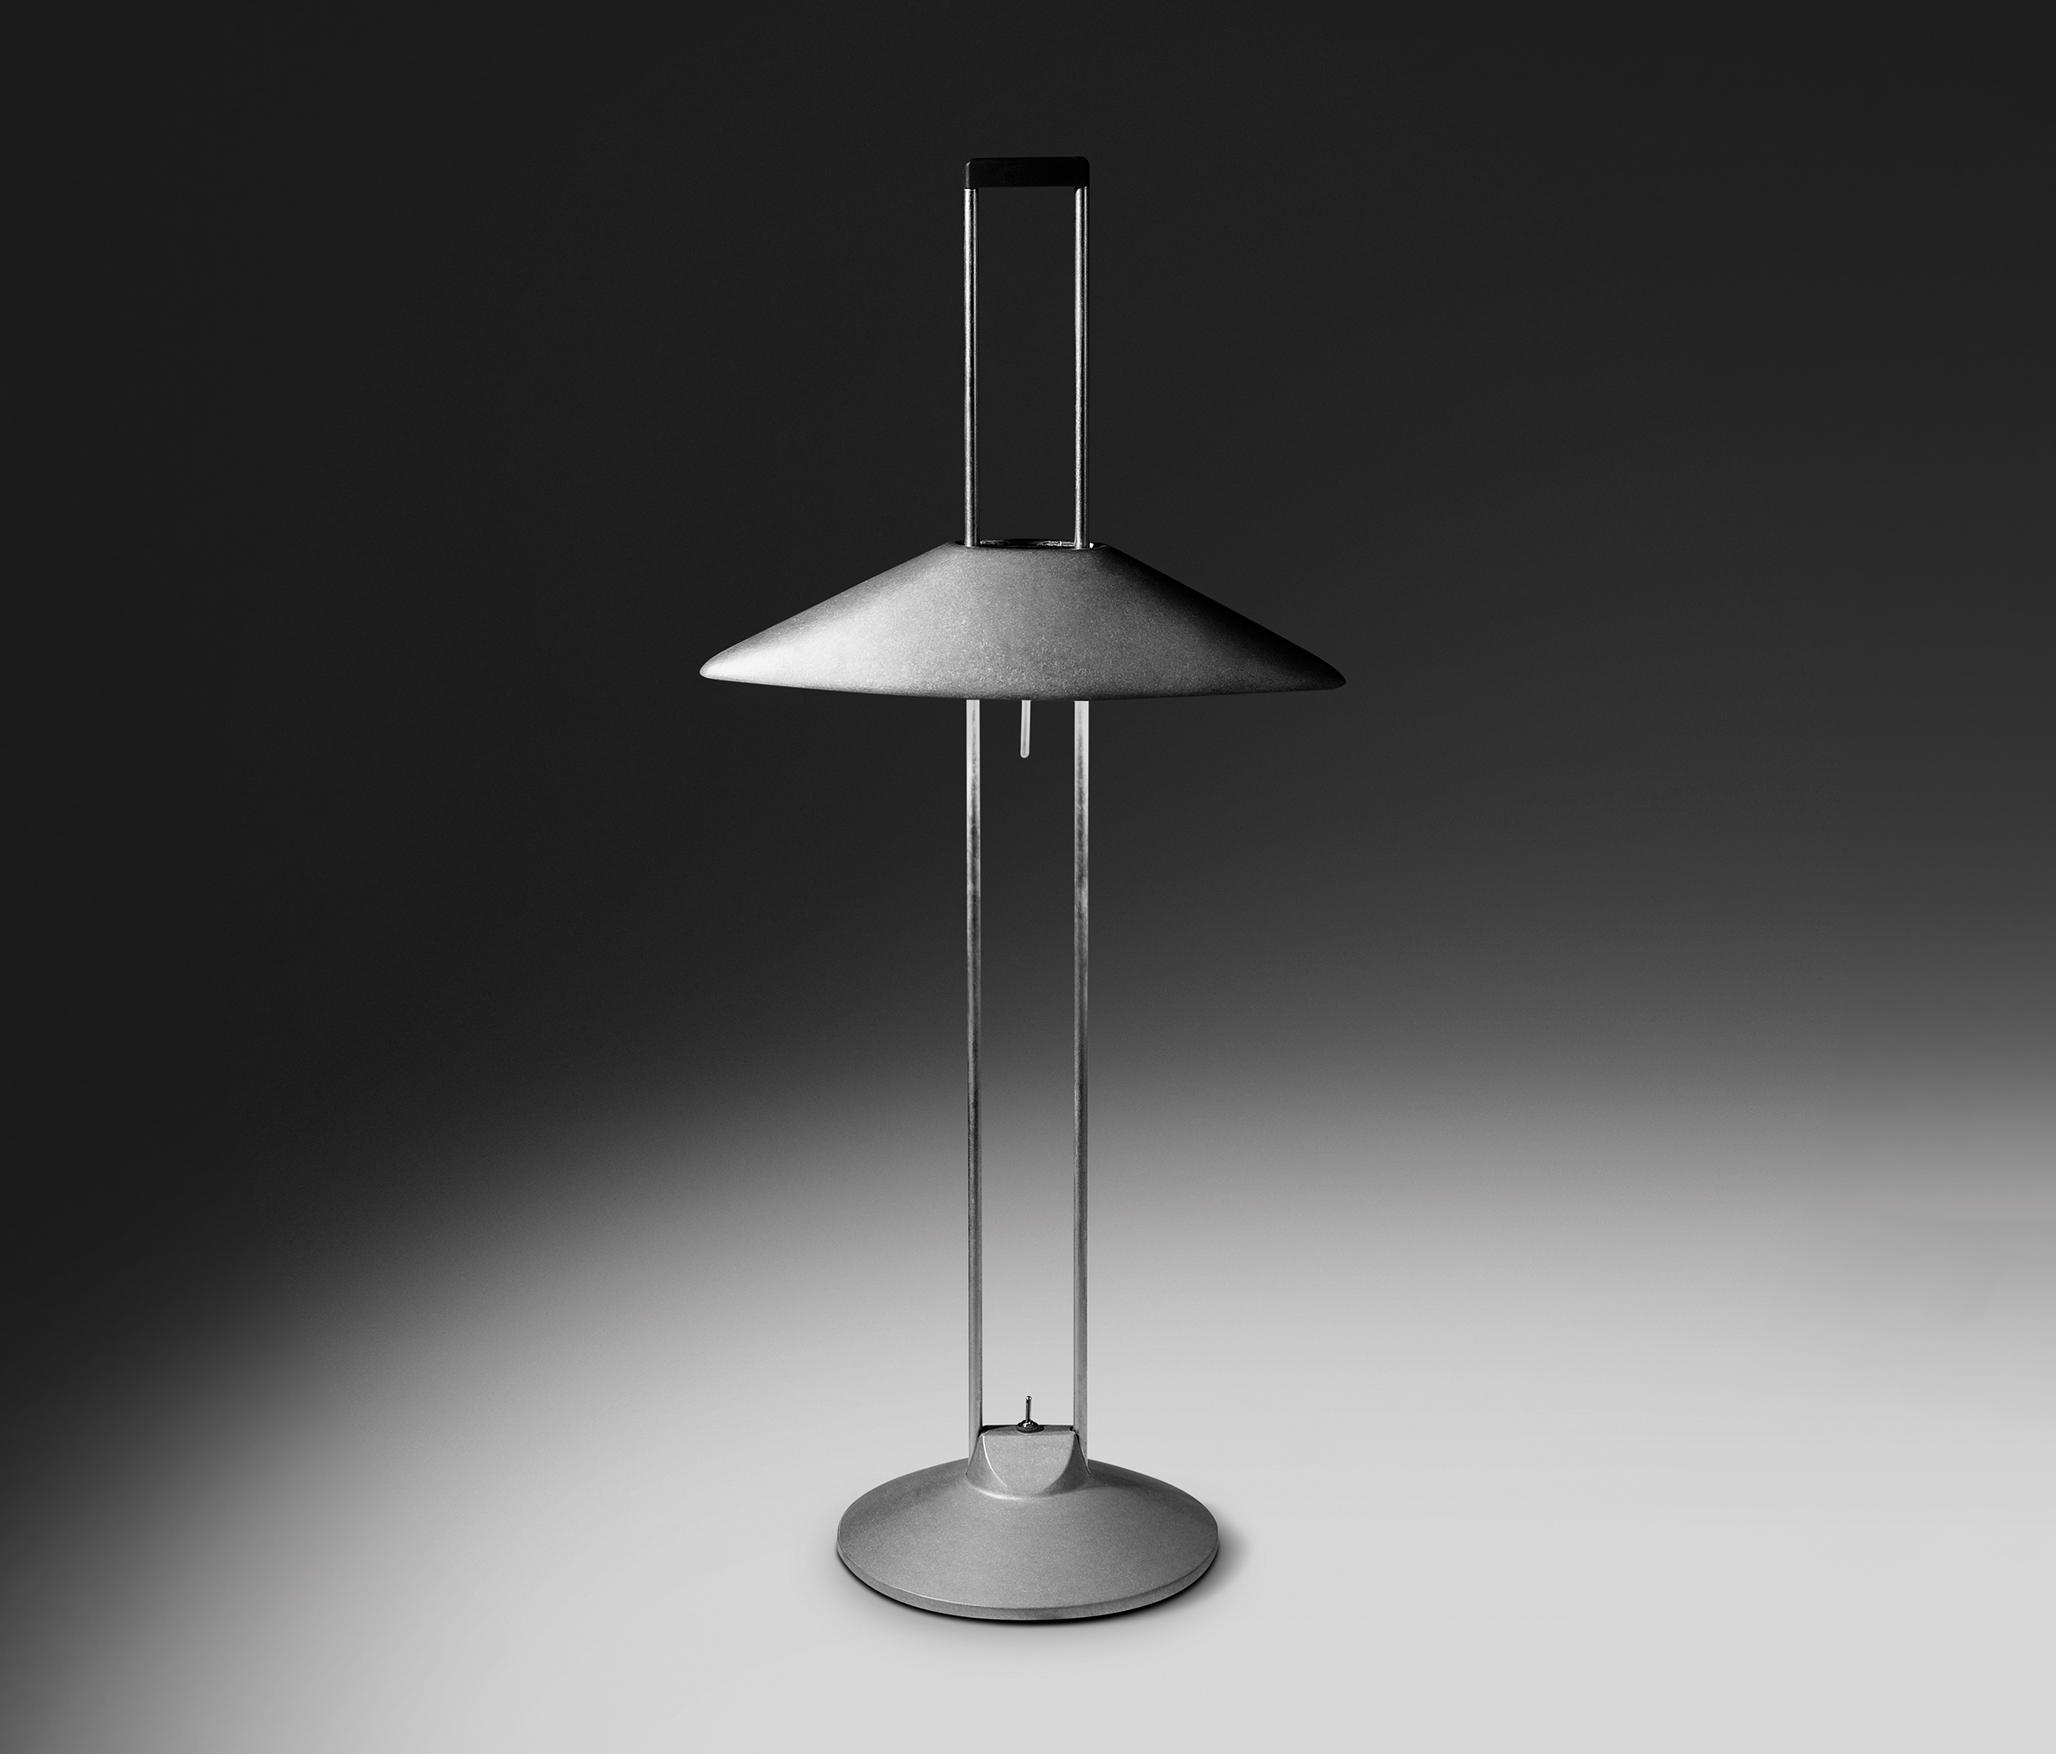 Regina by B.LUX | General lighting ... & REGINA - General lighting from B.LUX | Architonic azcodes.com